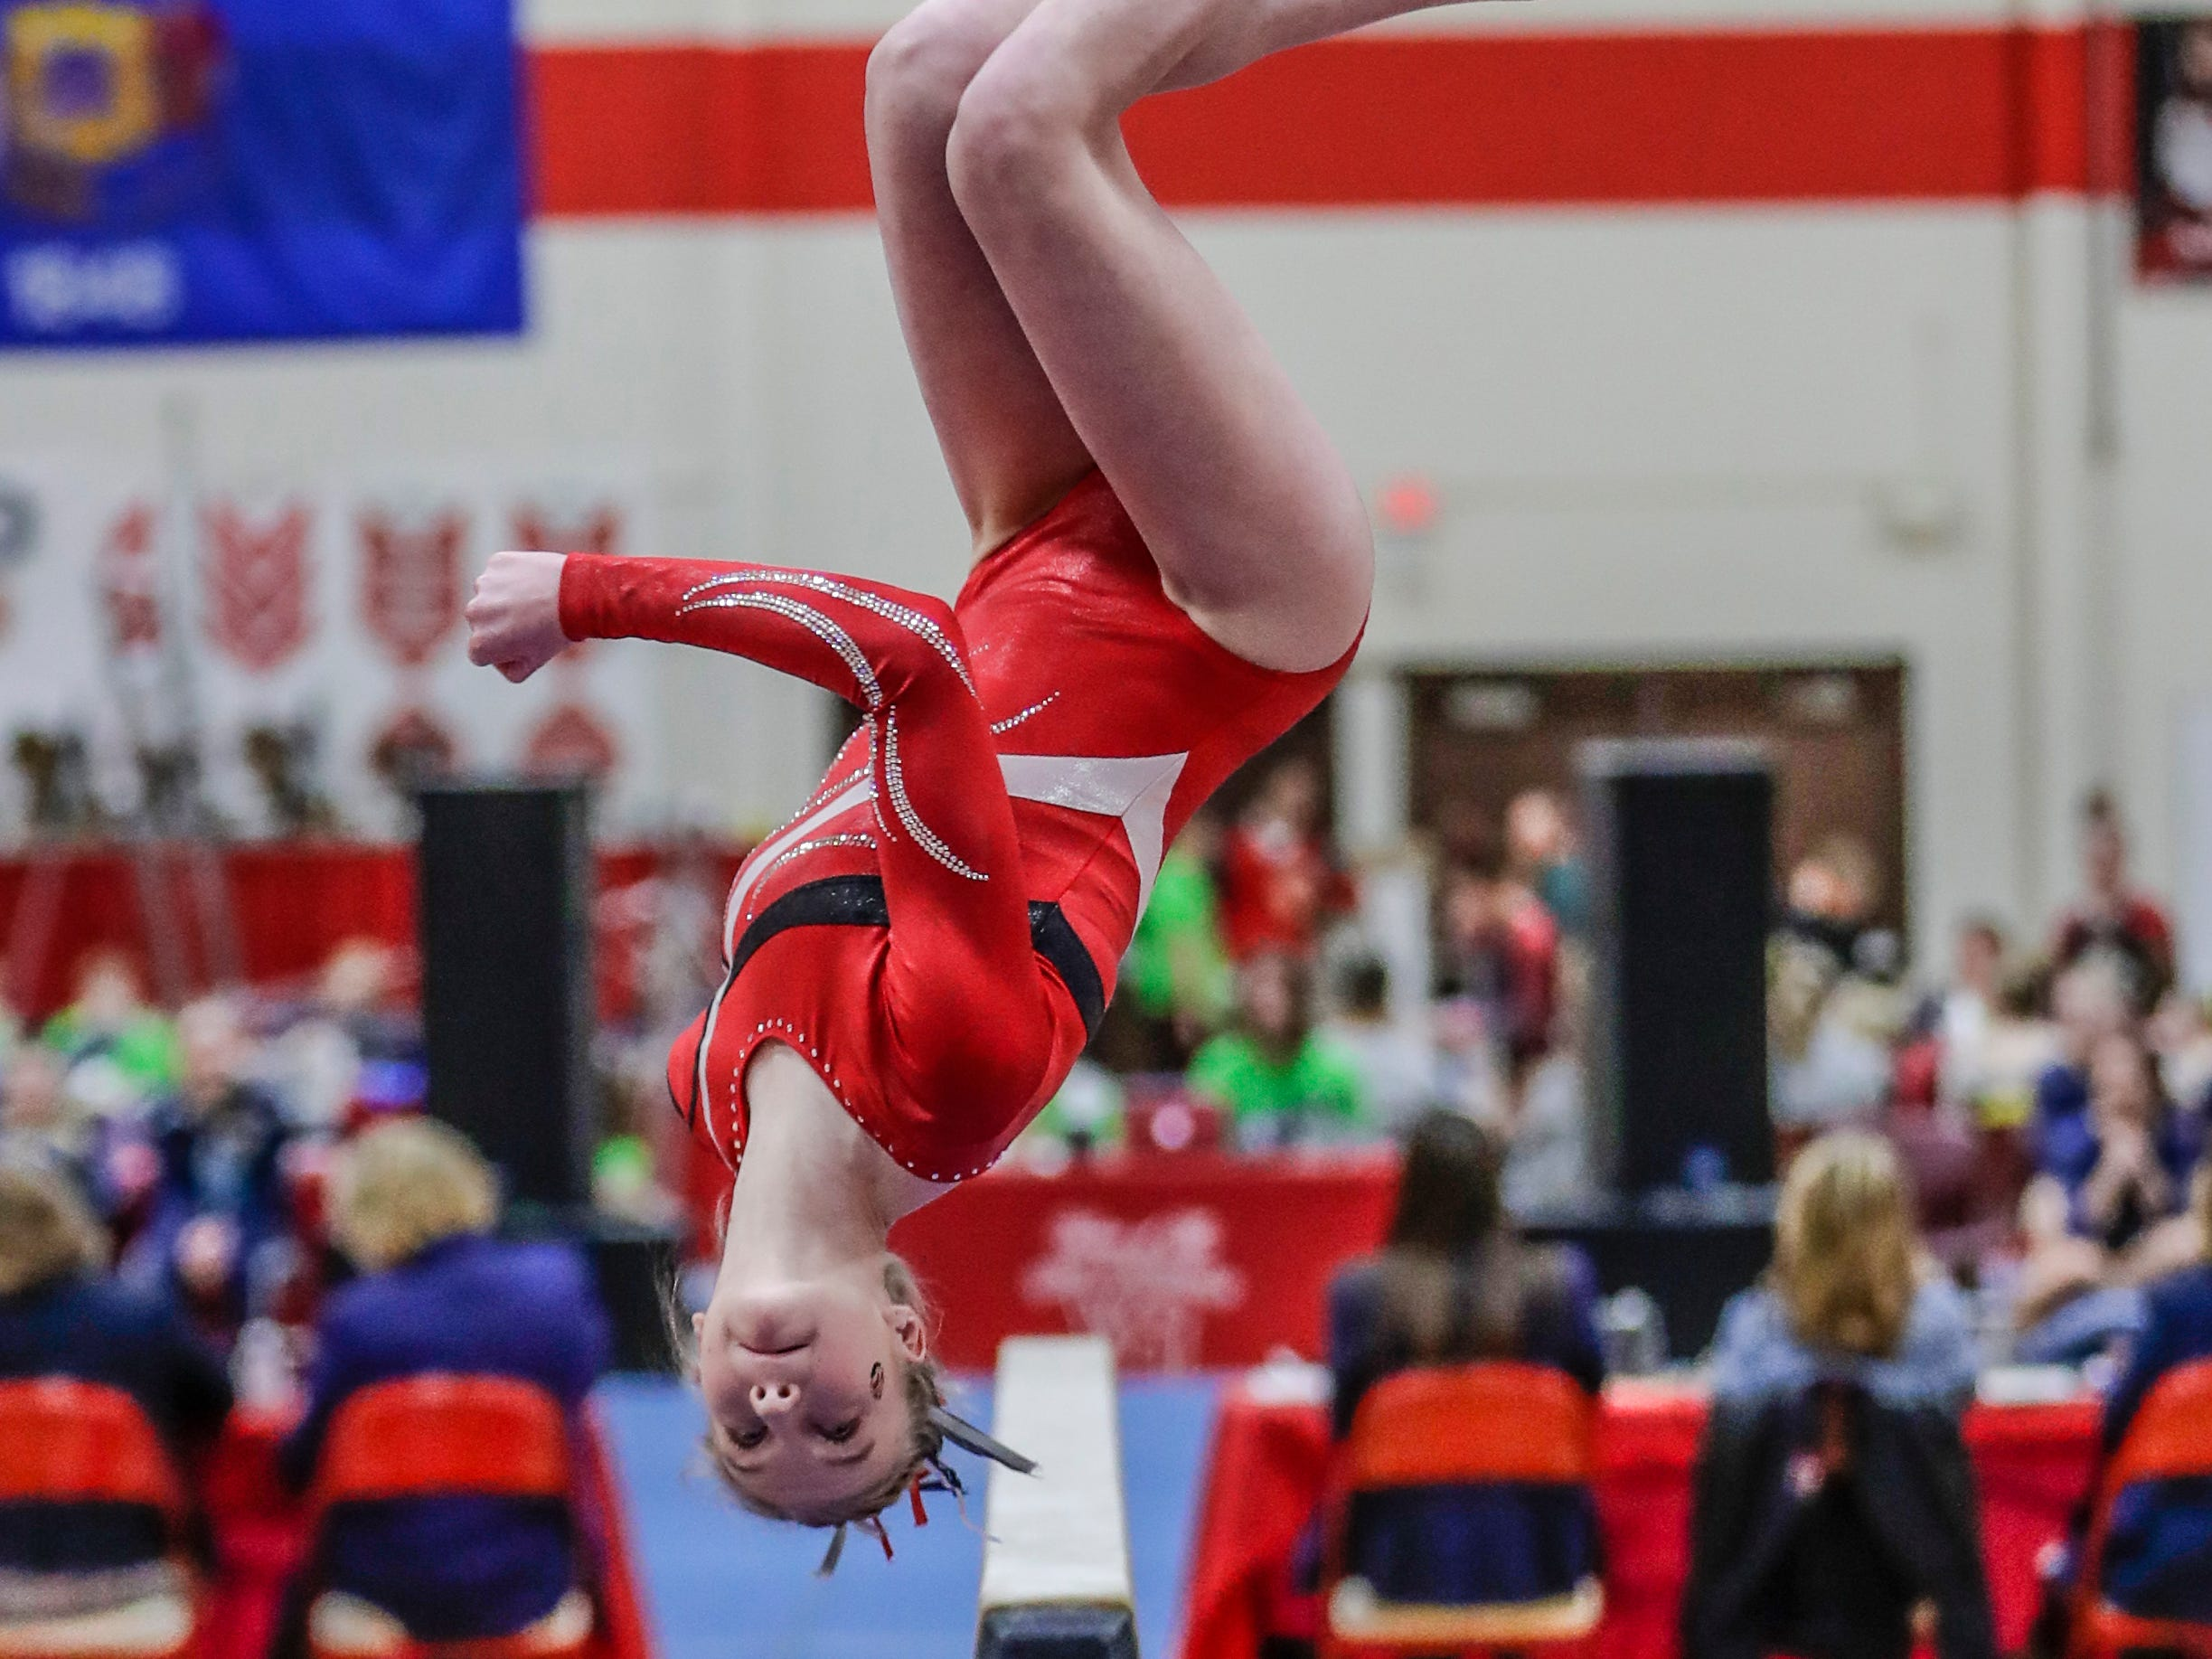 Manitowoc Lincoln's Meghan Borchardt competes on the balance beam in Division 1 during WIAA state gymnastics competition Friday, March 1, 2019, at Lincoln High School Field House in Wisconsin Rapids, Wis. T'xer Zhon Kha/USA TODAY NETWORK-Wisconsin